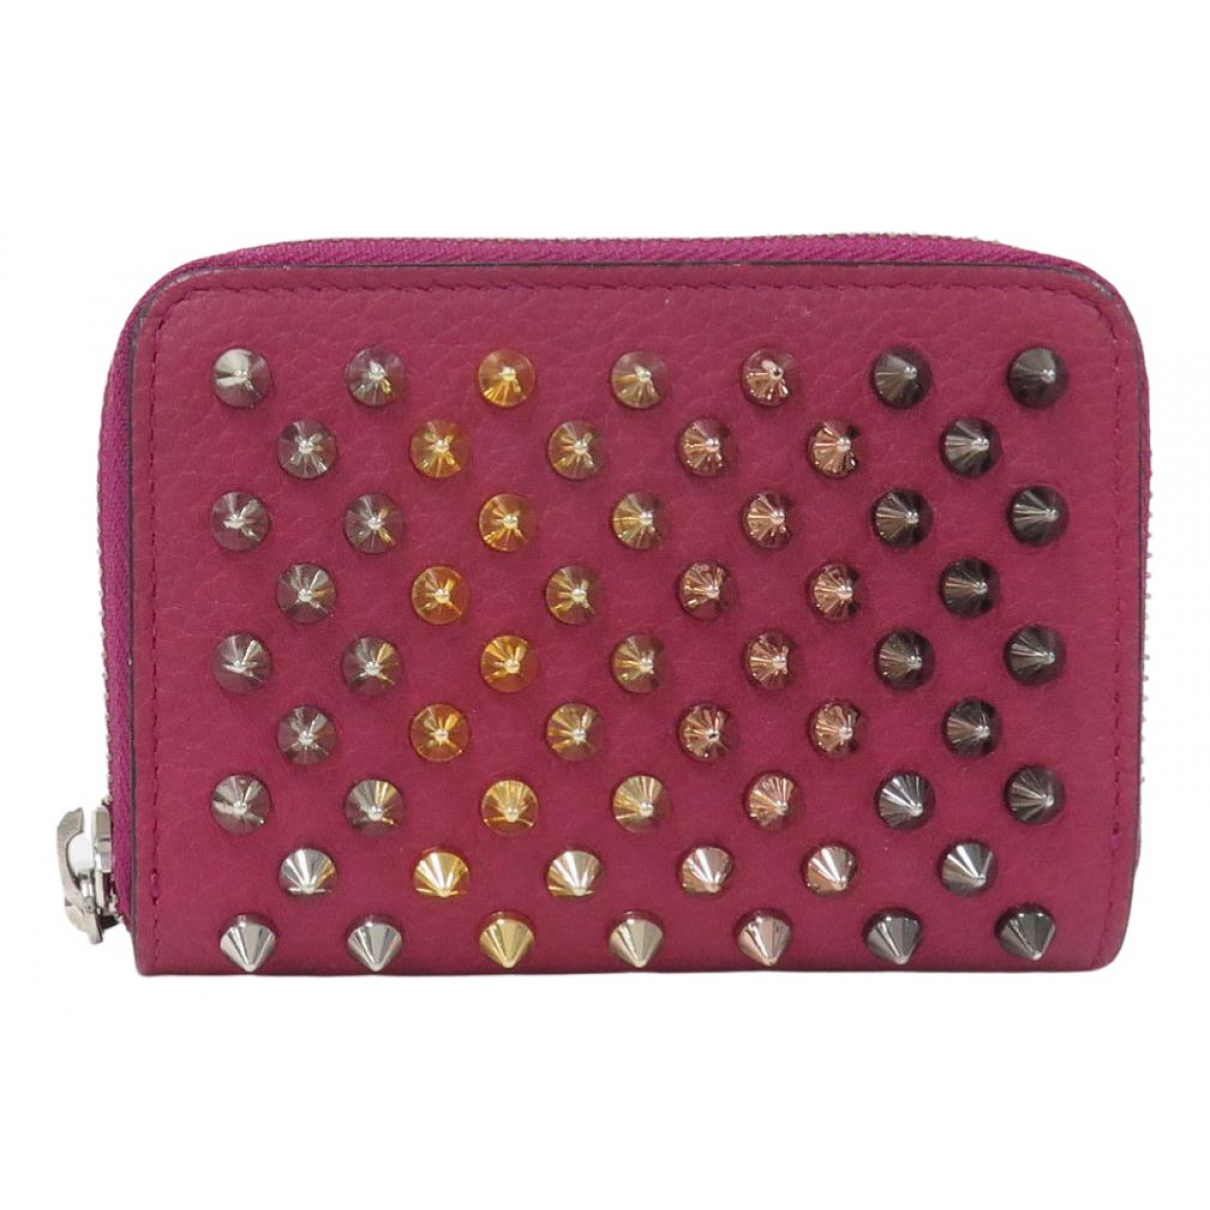 Christian Louboutin N Pink Leather Purses, wallet & cases for Women N